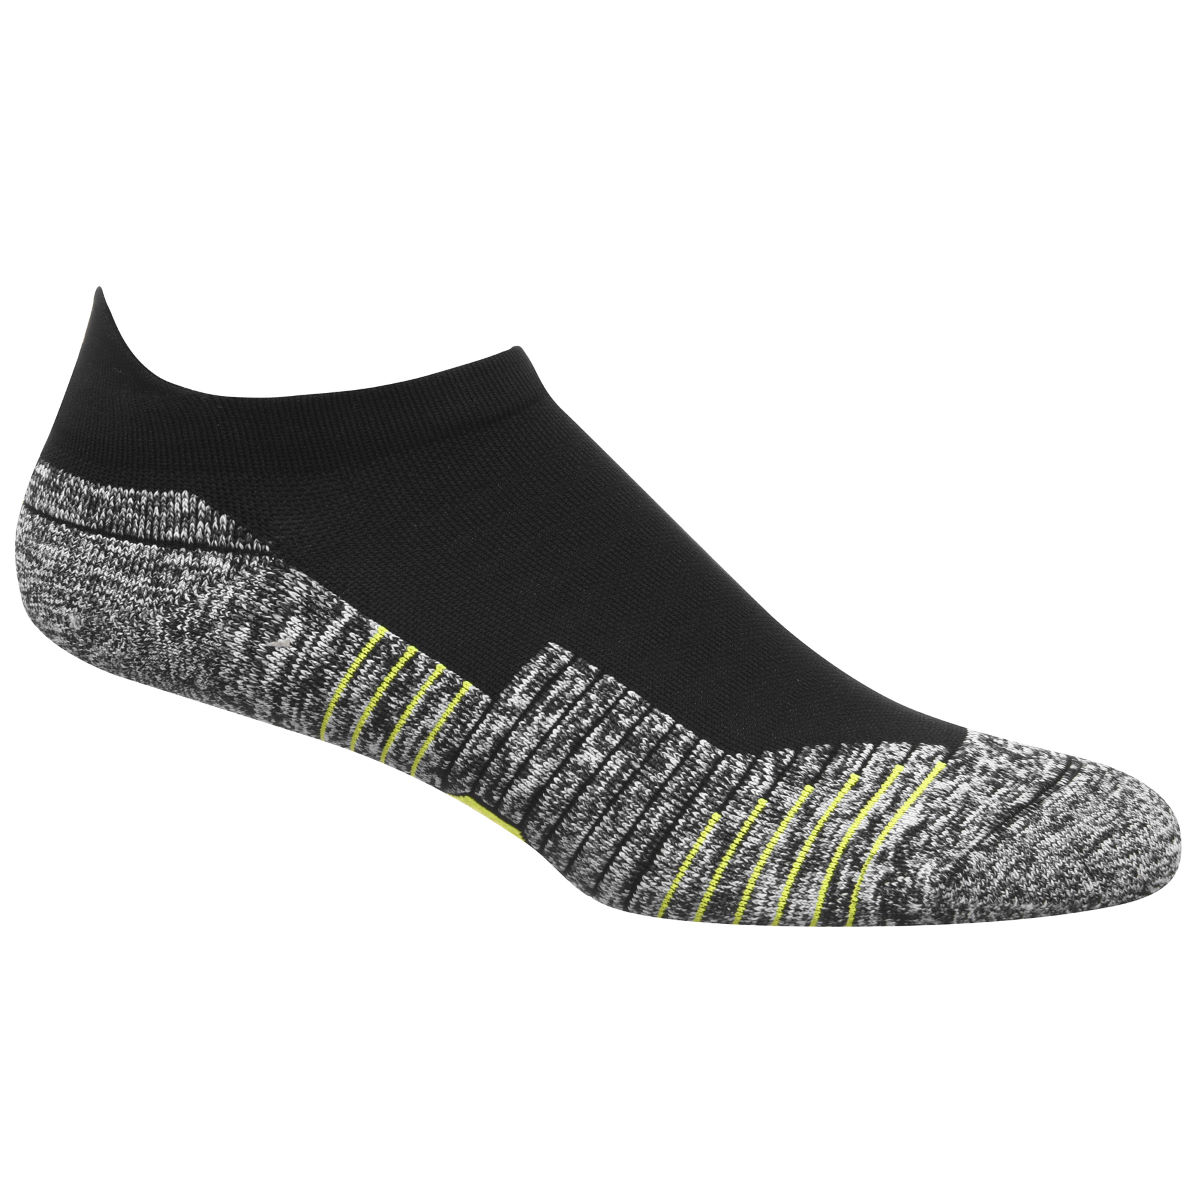 Chaussettes Under Armour Charged Cushion No Show Tab - M Noir